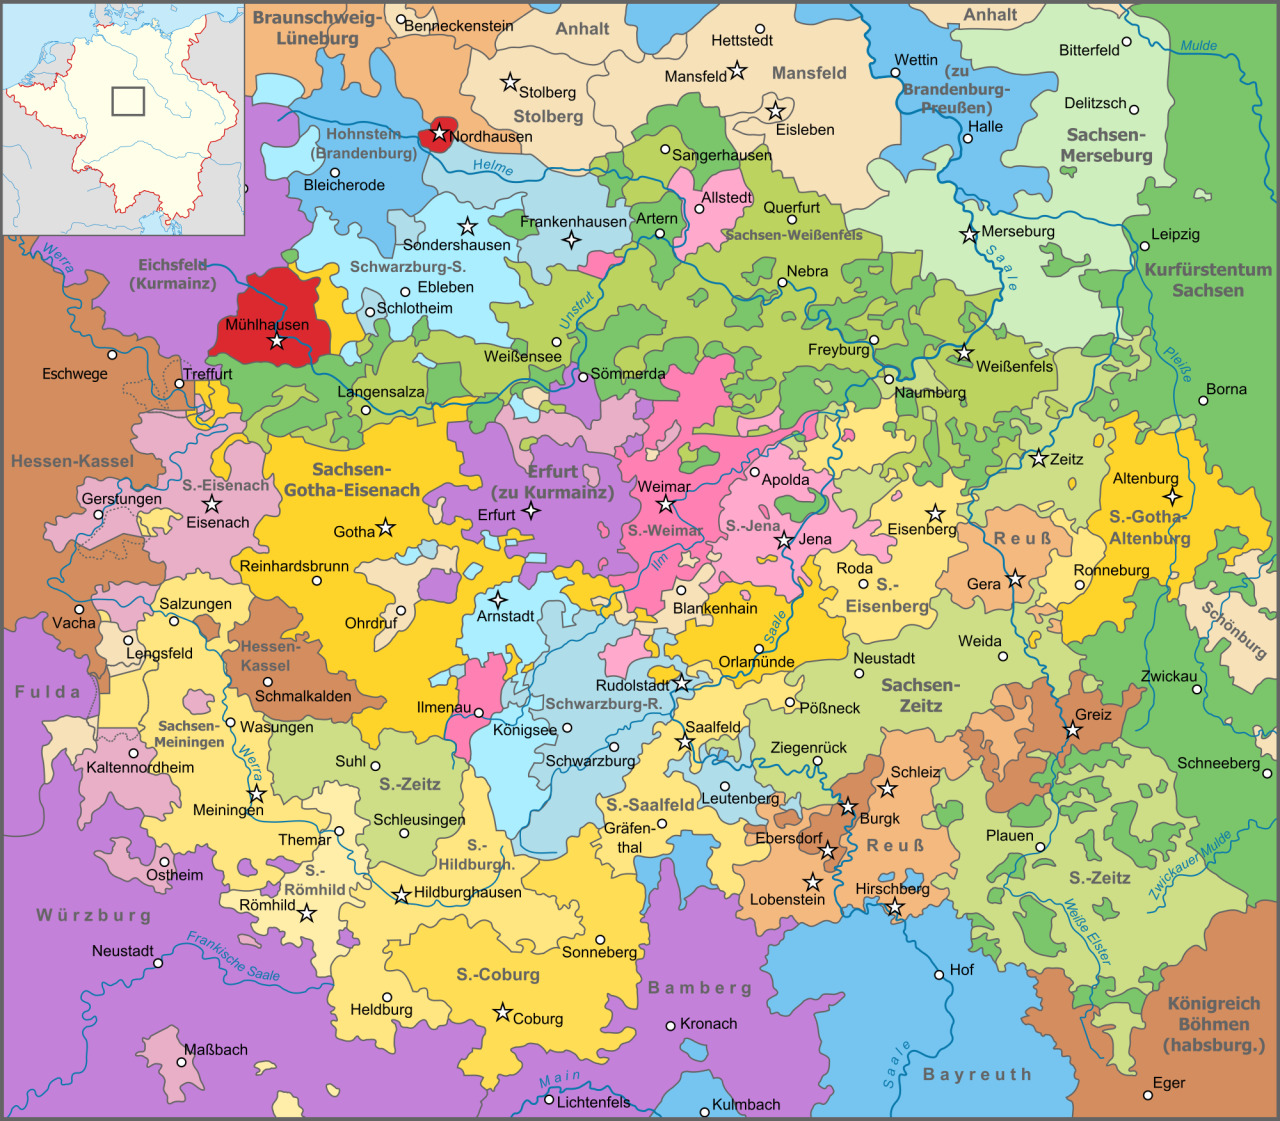 Map of Thuringia 1680 Maps Pinterest History and European history